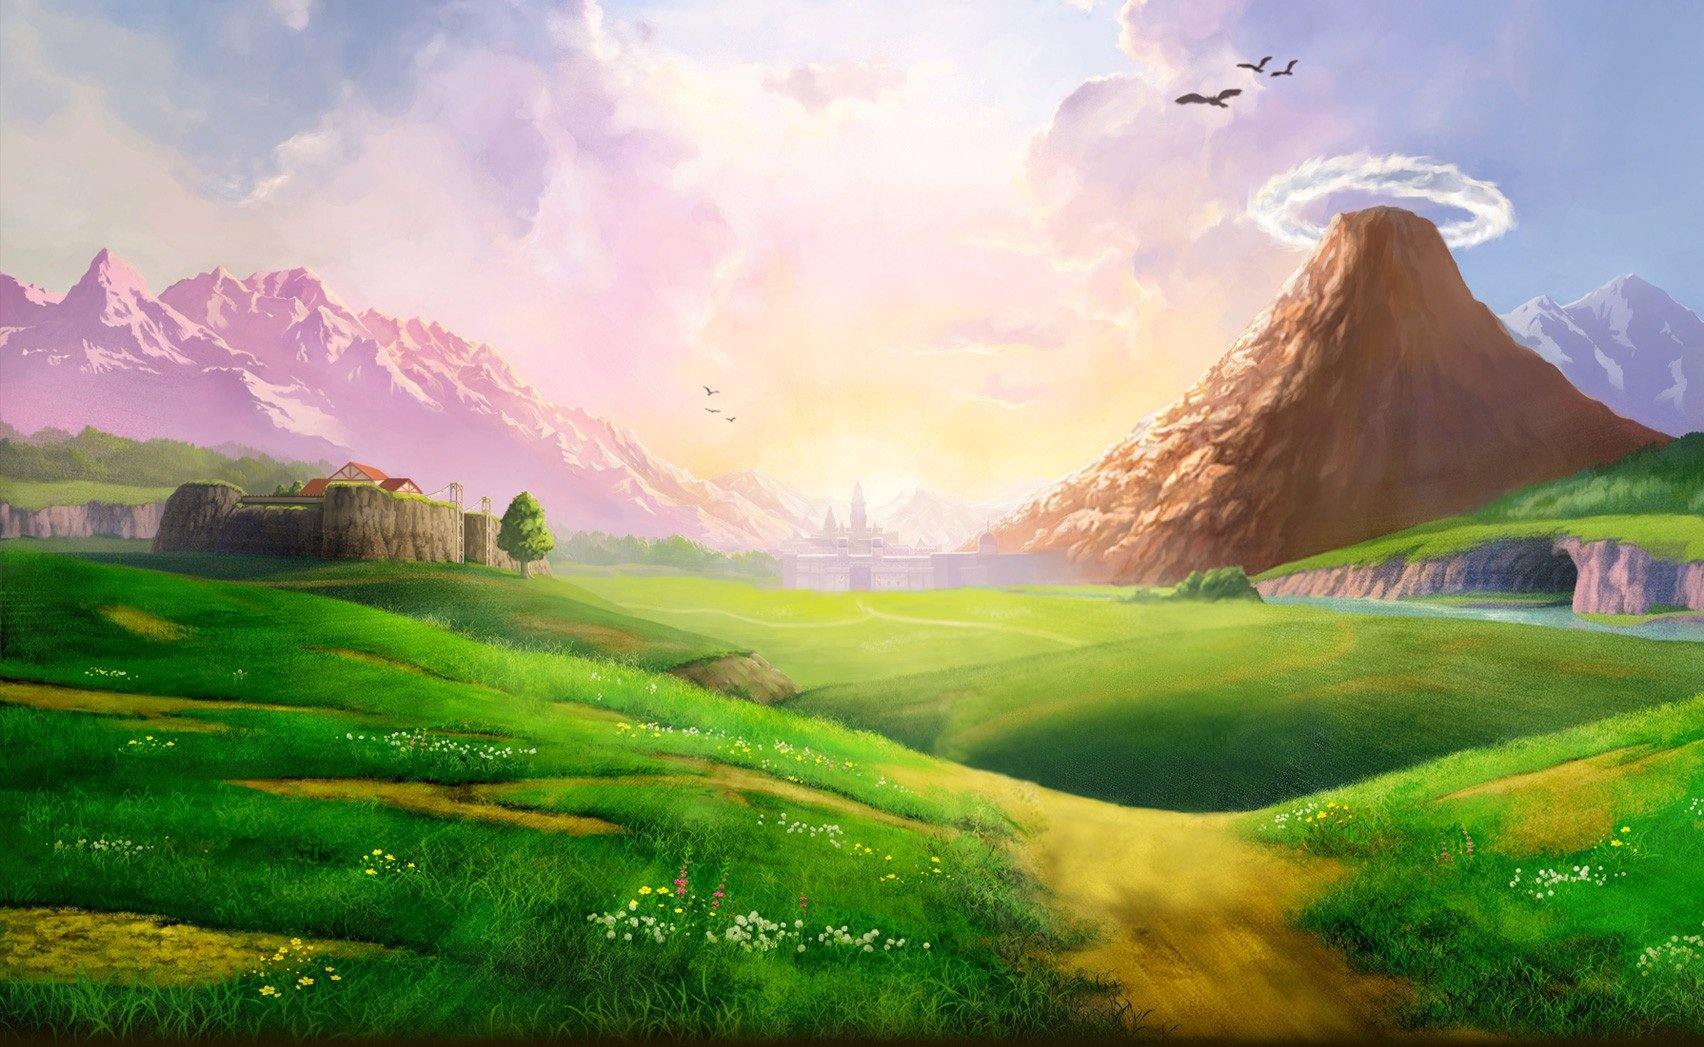 Anime Landscape HD Wallpapers DOWNLOAD Anime Landscape HD Wallpapers 1704x1047